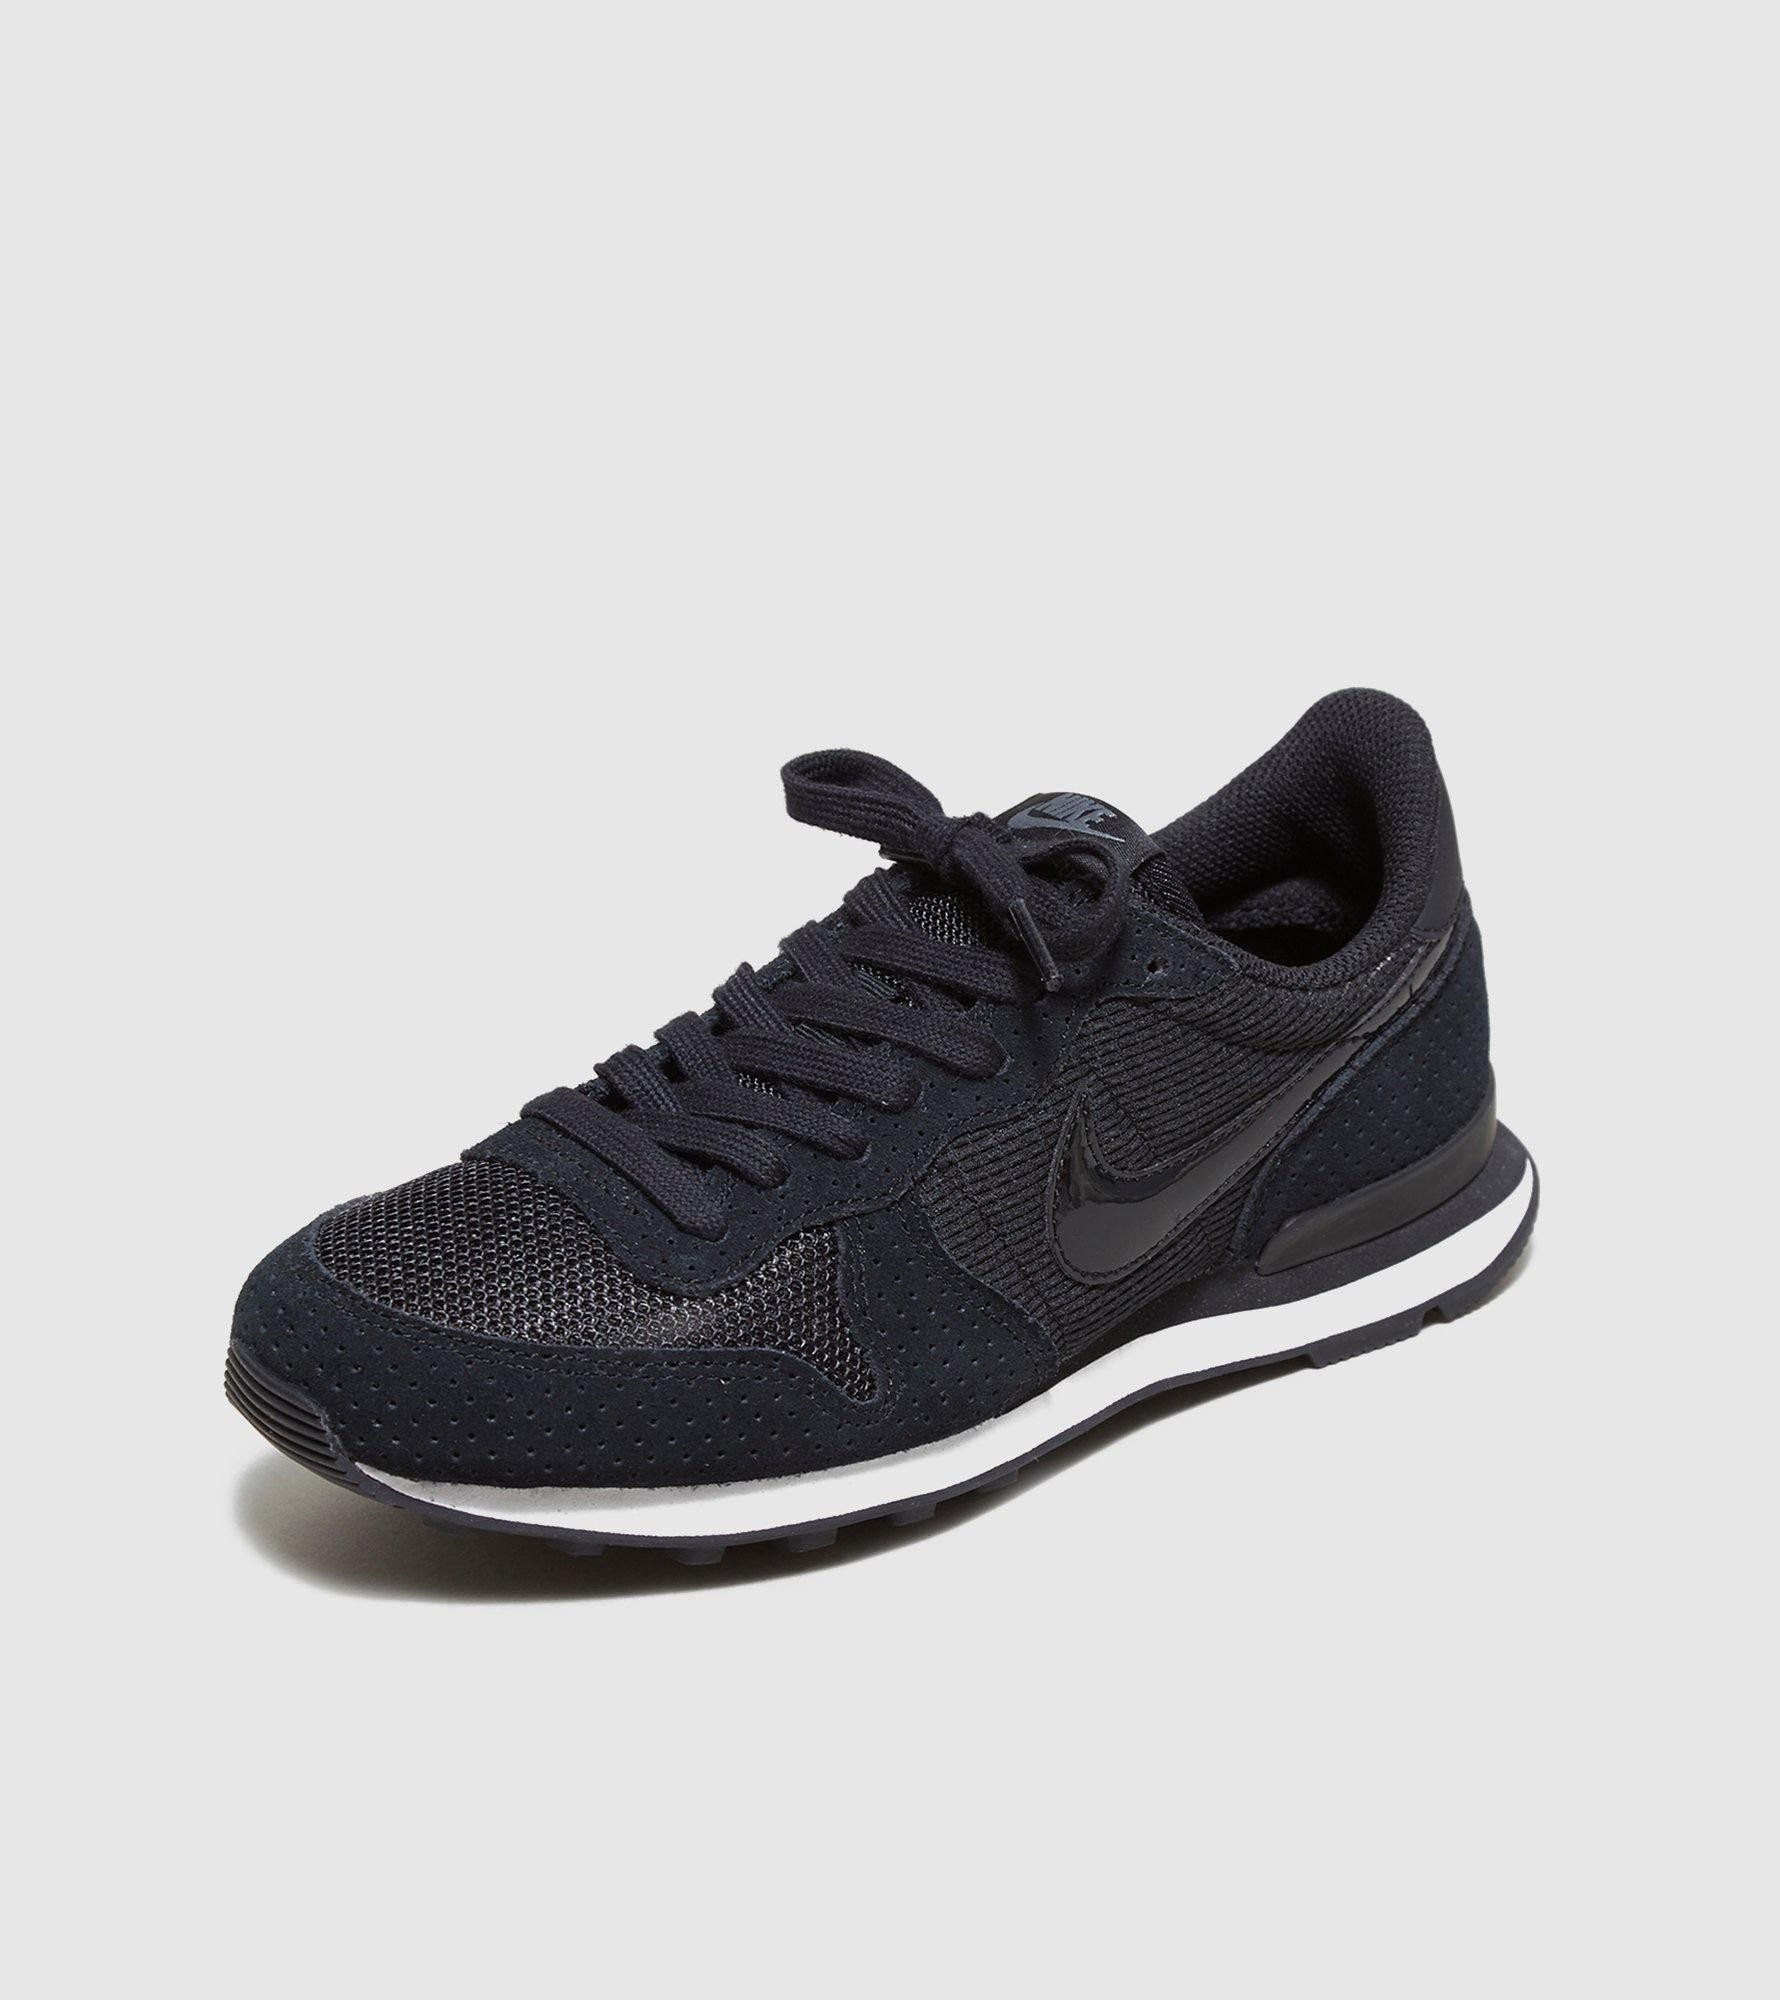 nike internationalist noire femme